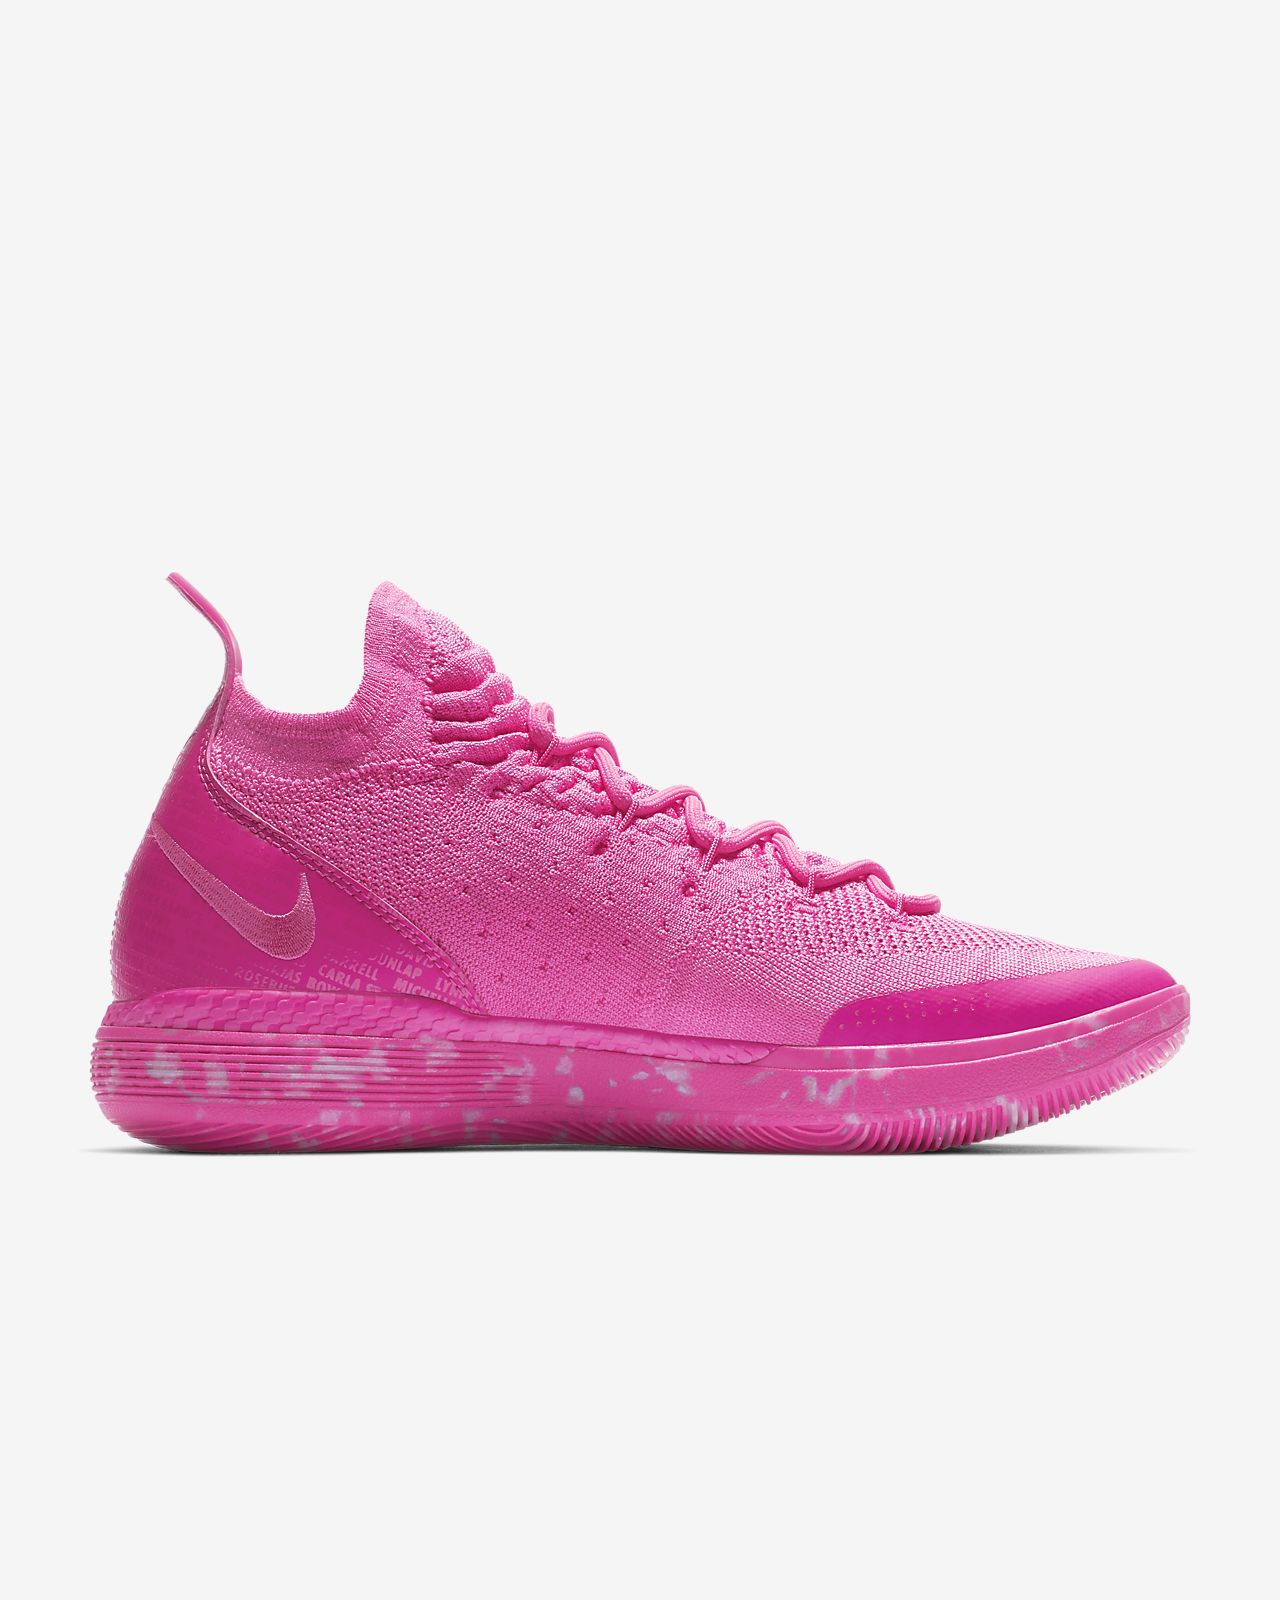 brand new 6f56b 623c0 ... Nike Zoom KD11 Aunt Pearl Basketball Shoe